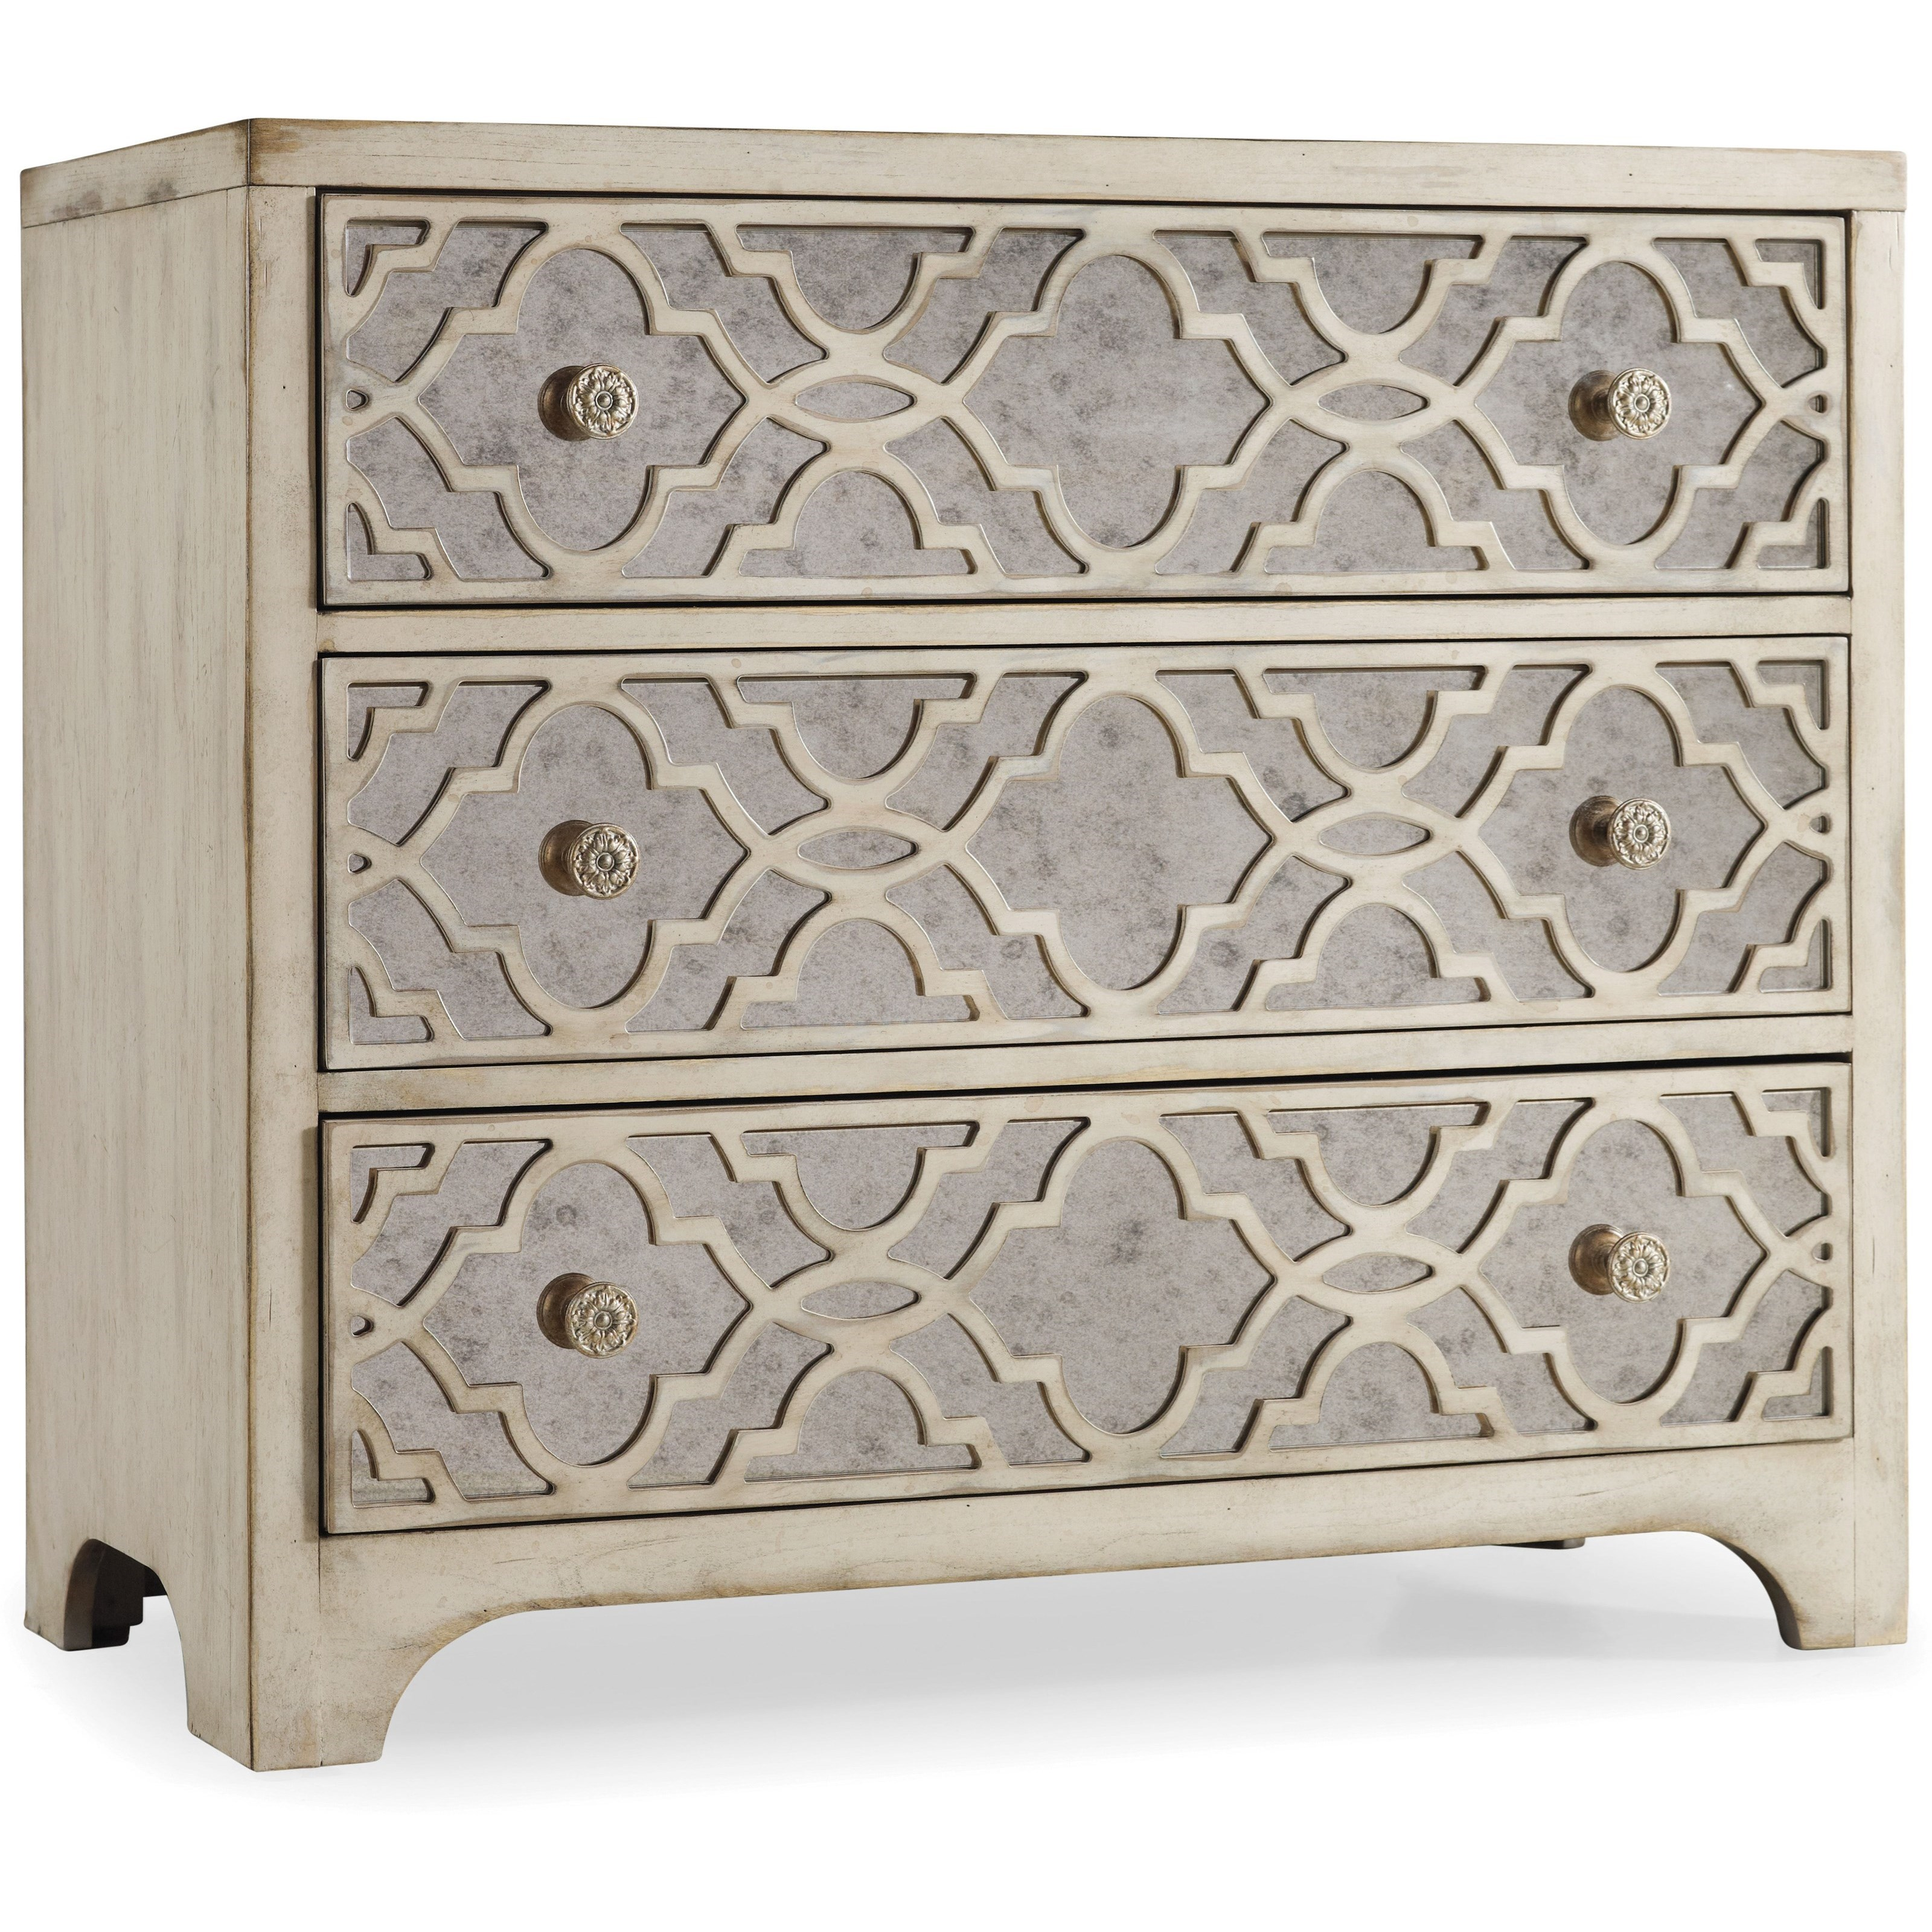 Sanctuary Fretwork Chest - Pearl Essence by Hooker Furniture at Baer's Furniture